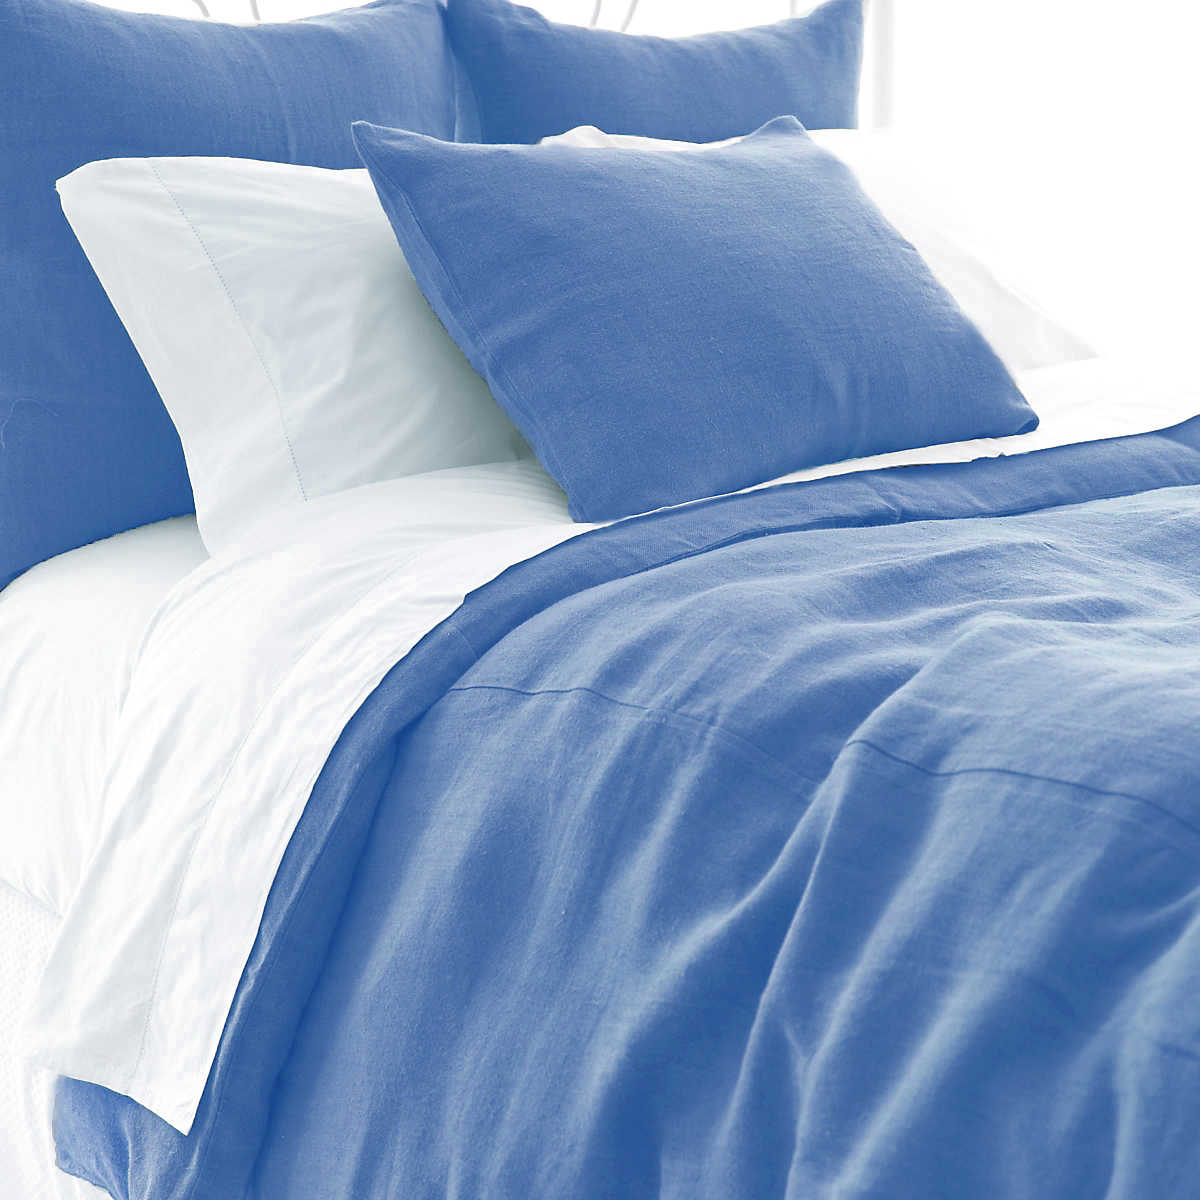 Stone Washed Linen French Blue Duvet Cover The Outlet